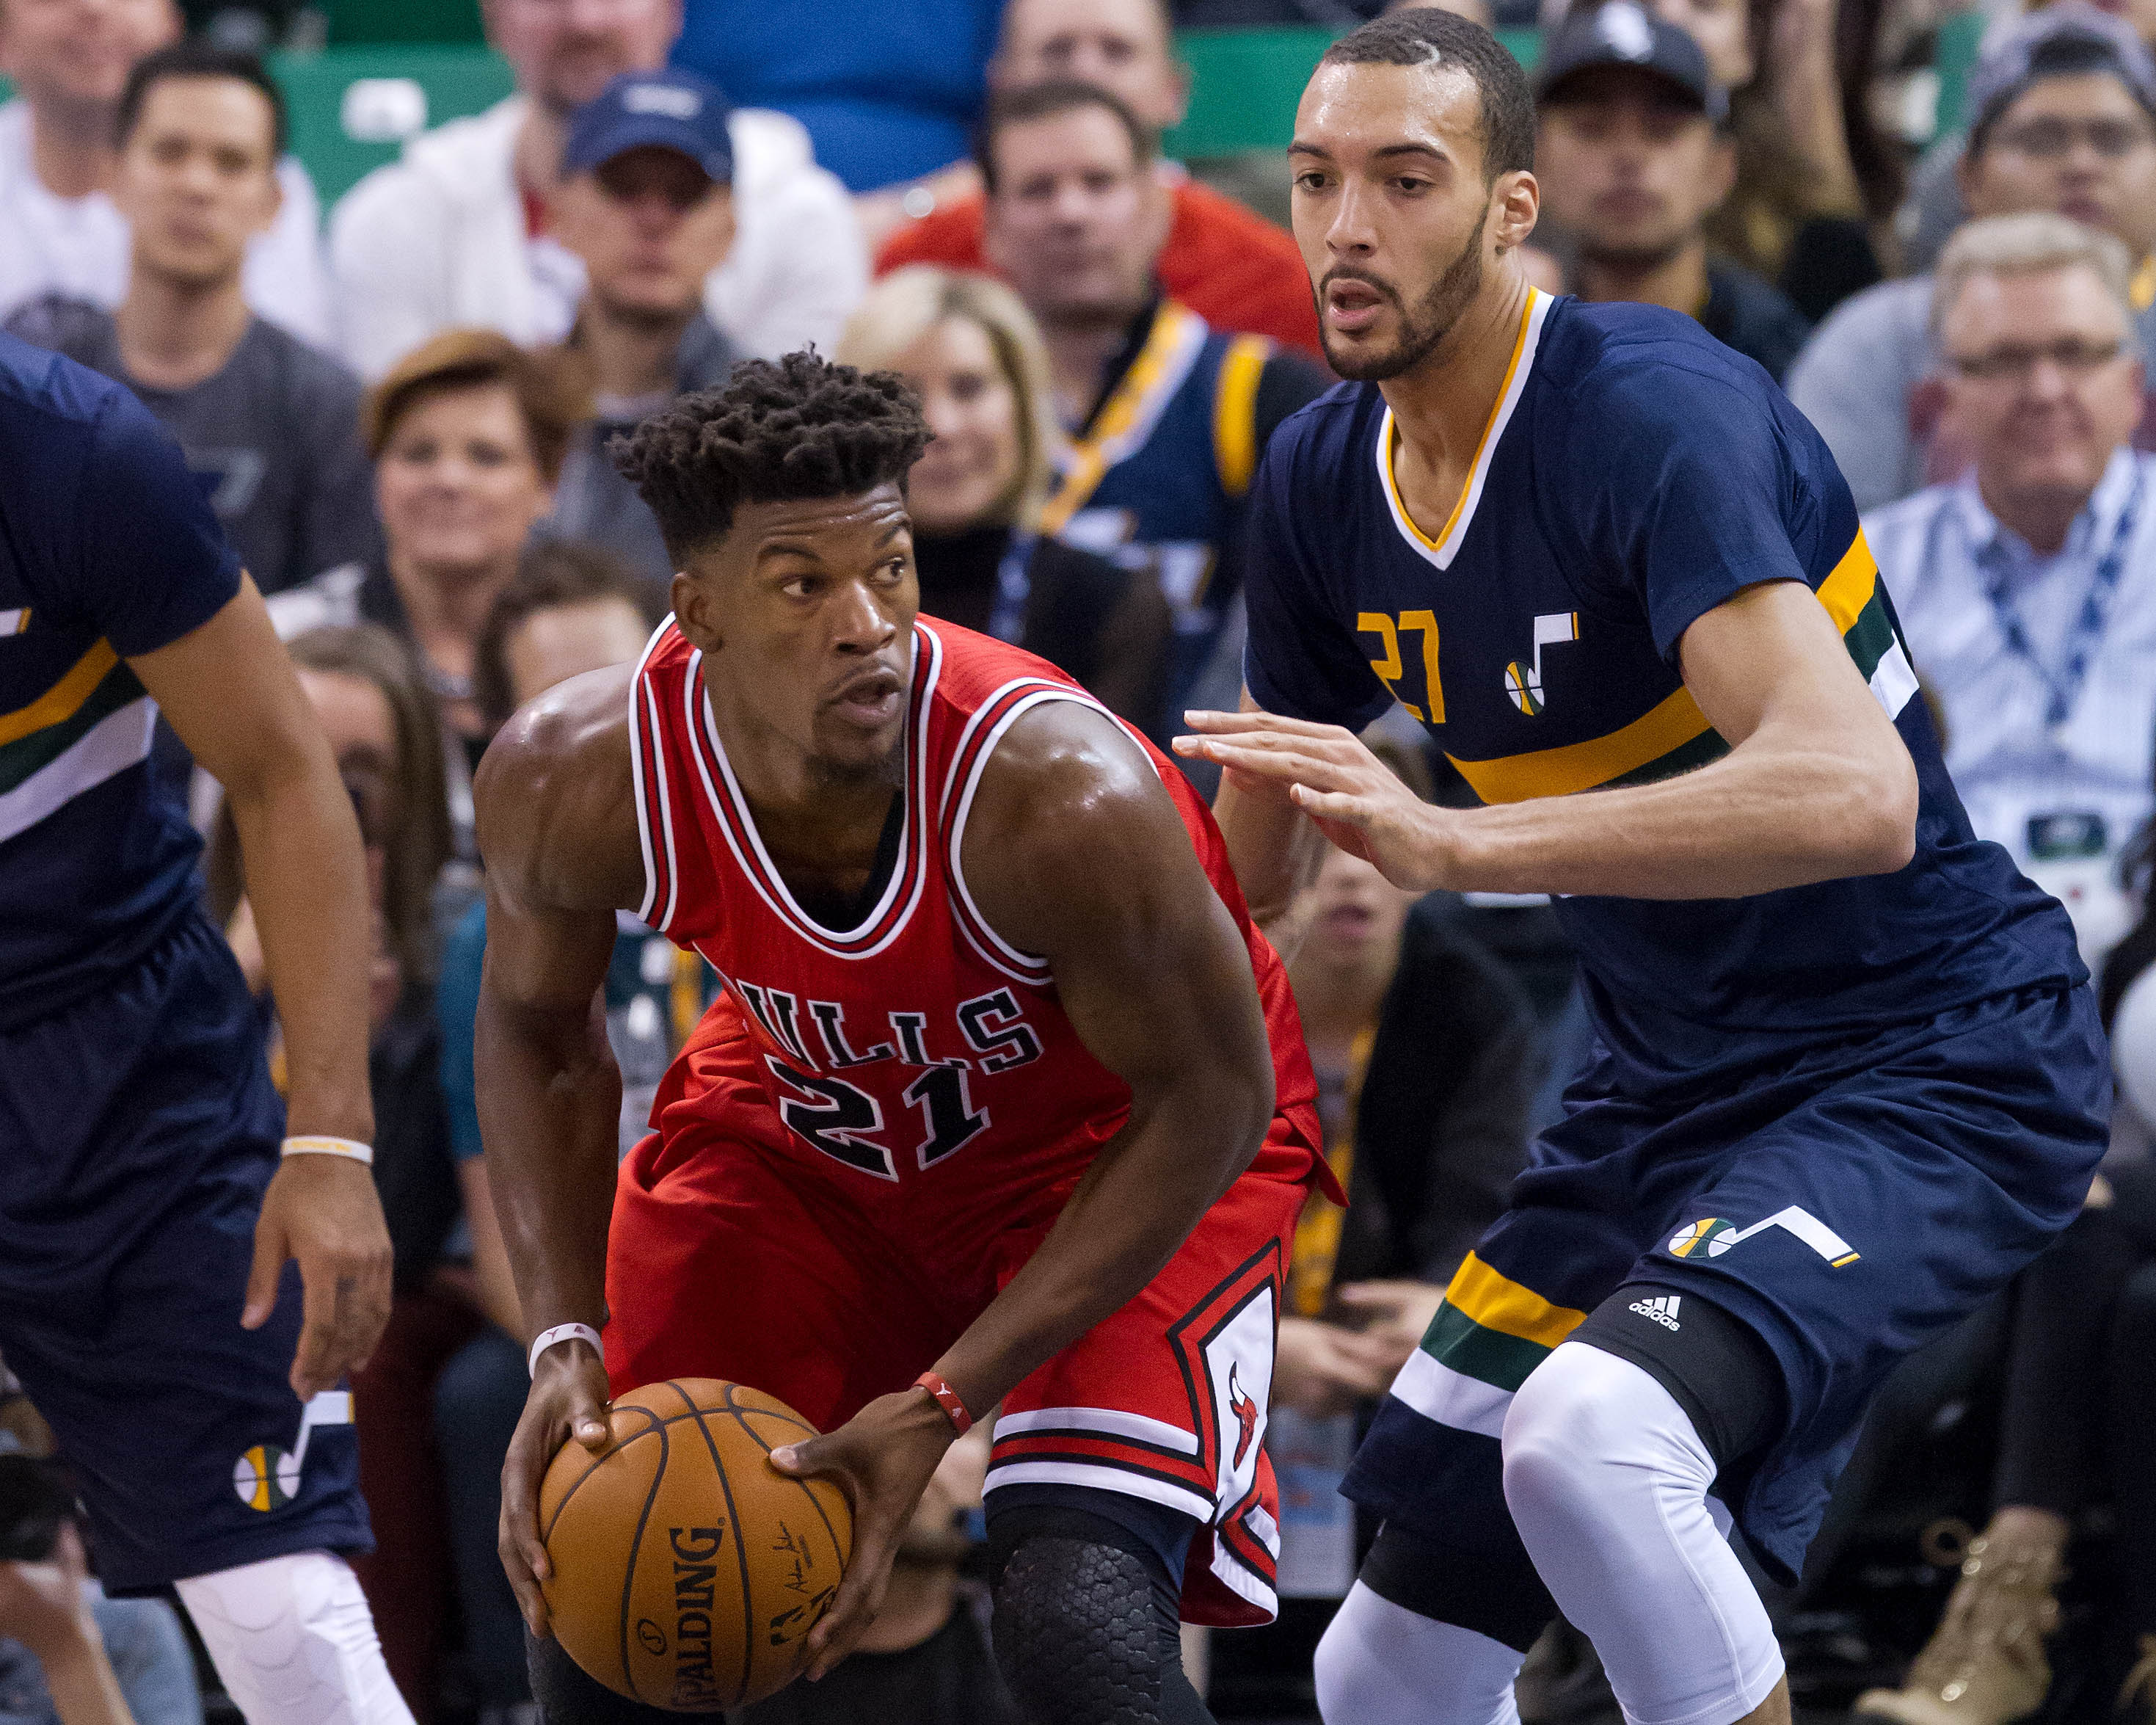 9685099-nba-chicago-bulls-at-utah-jazz